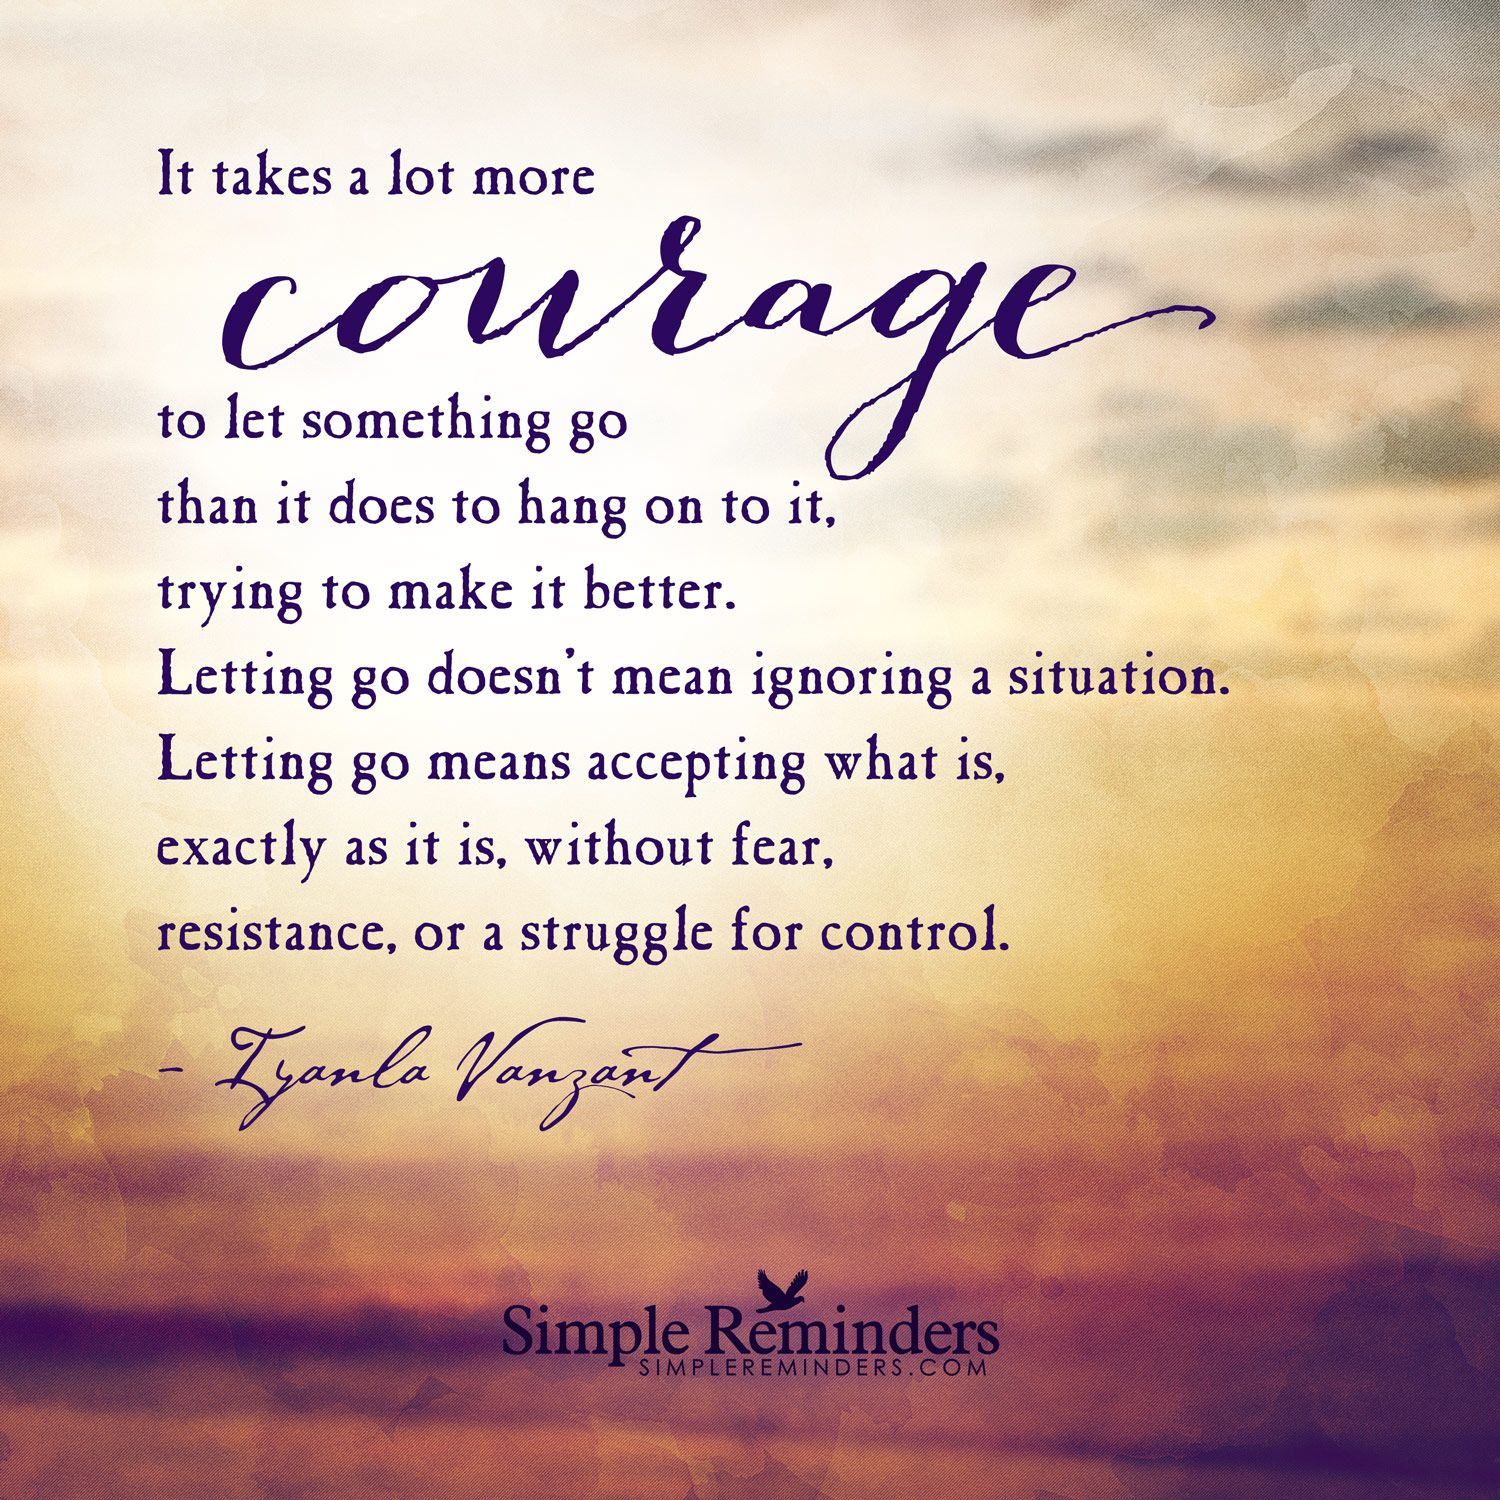 Go For It Quotes: The Courage To Let Go -Iylana Vanzant